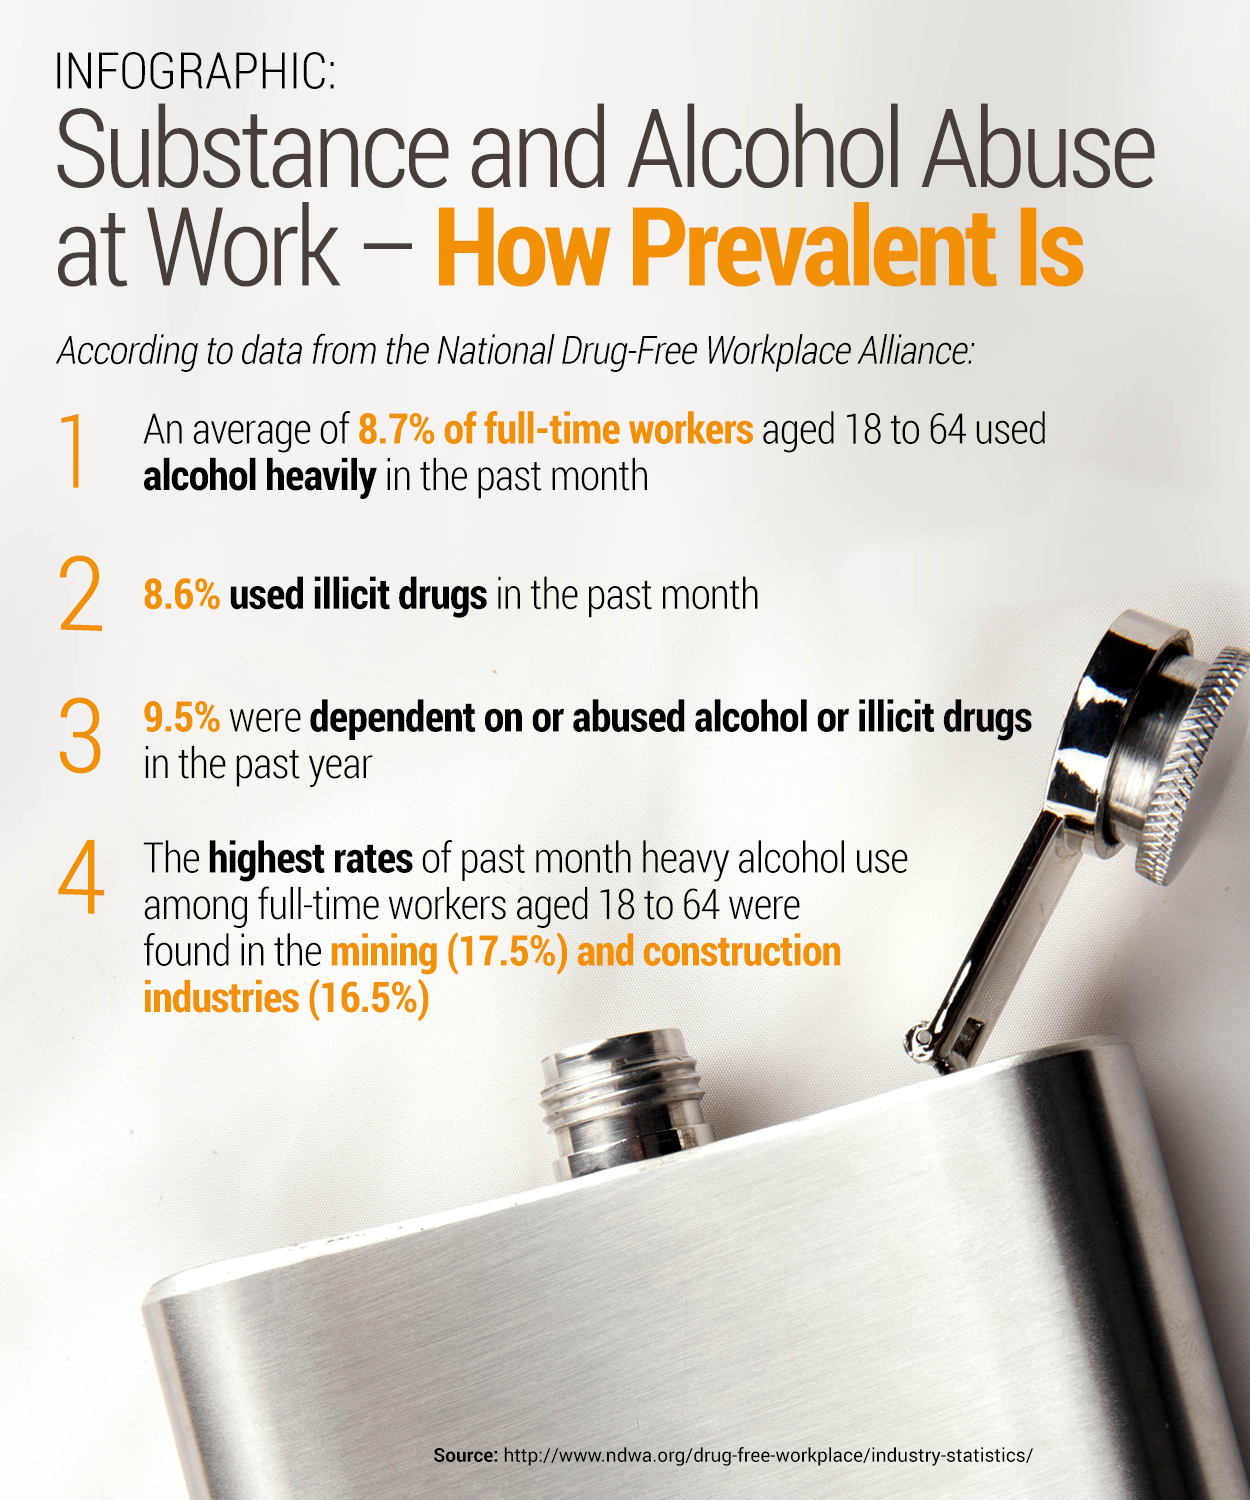 Infographic: Substance and Alcohol Abuse at Work -- How Prevalent Is It?